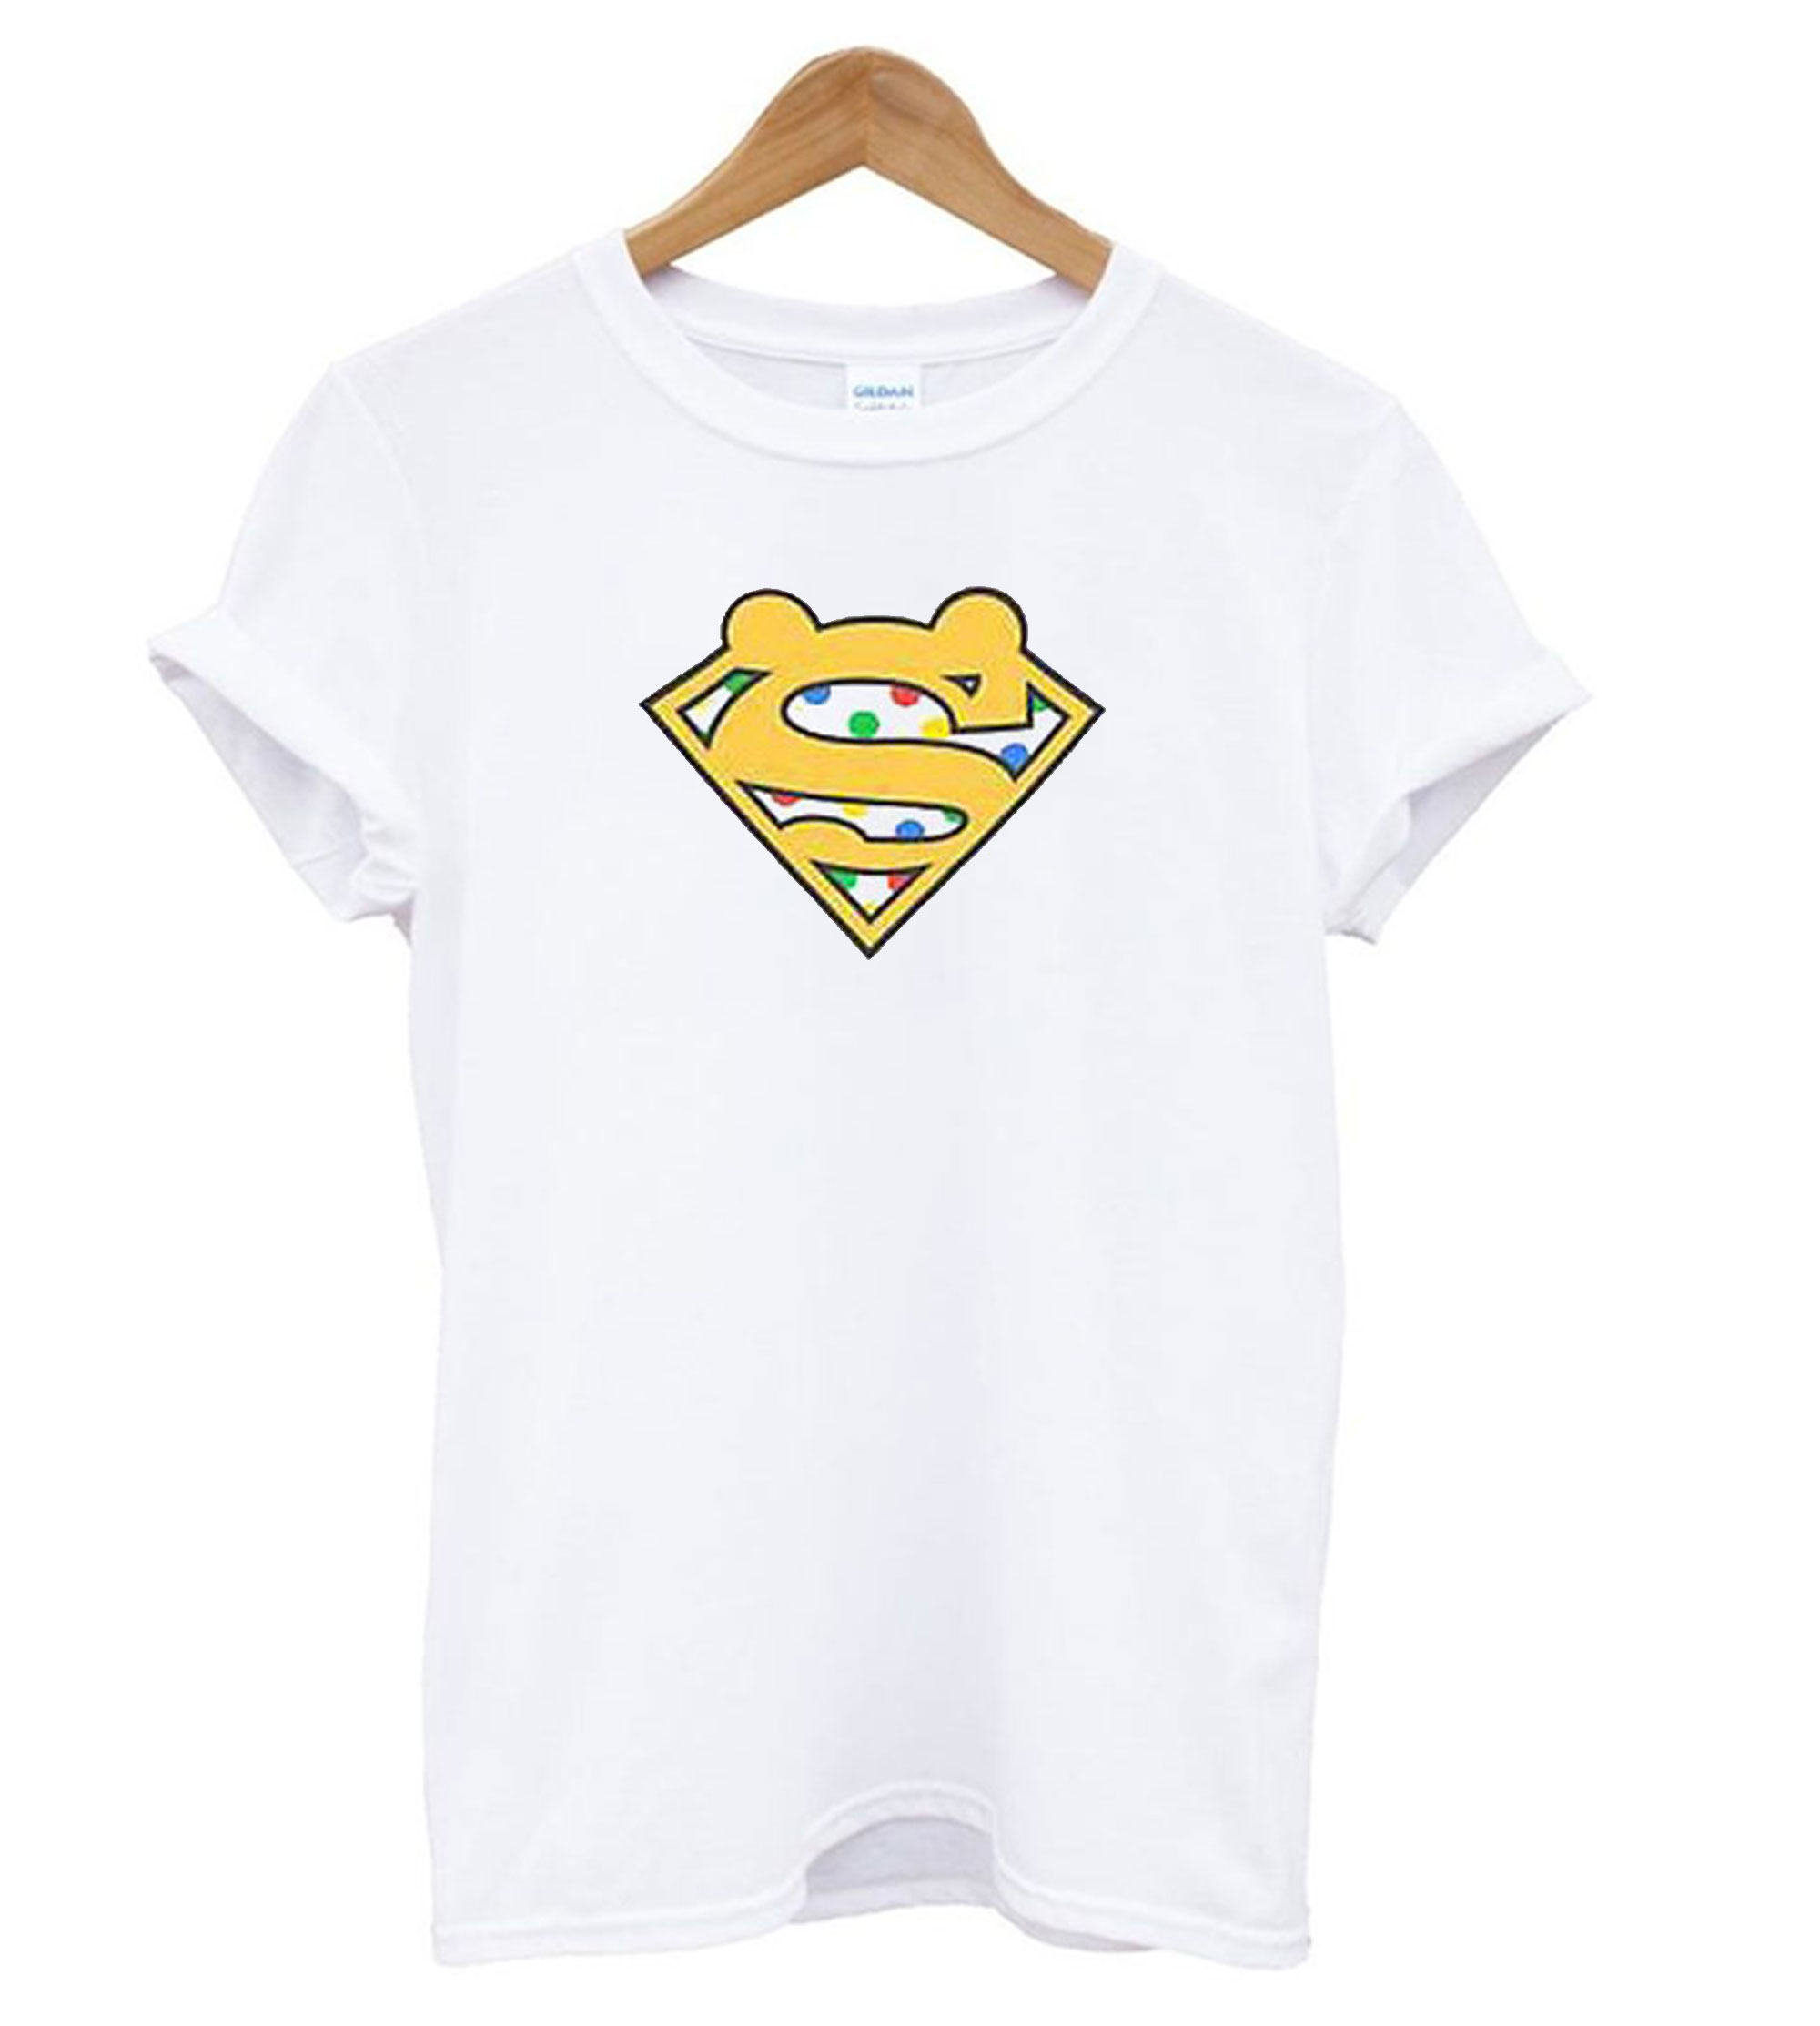 Super Pudsey T shirt